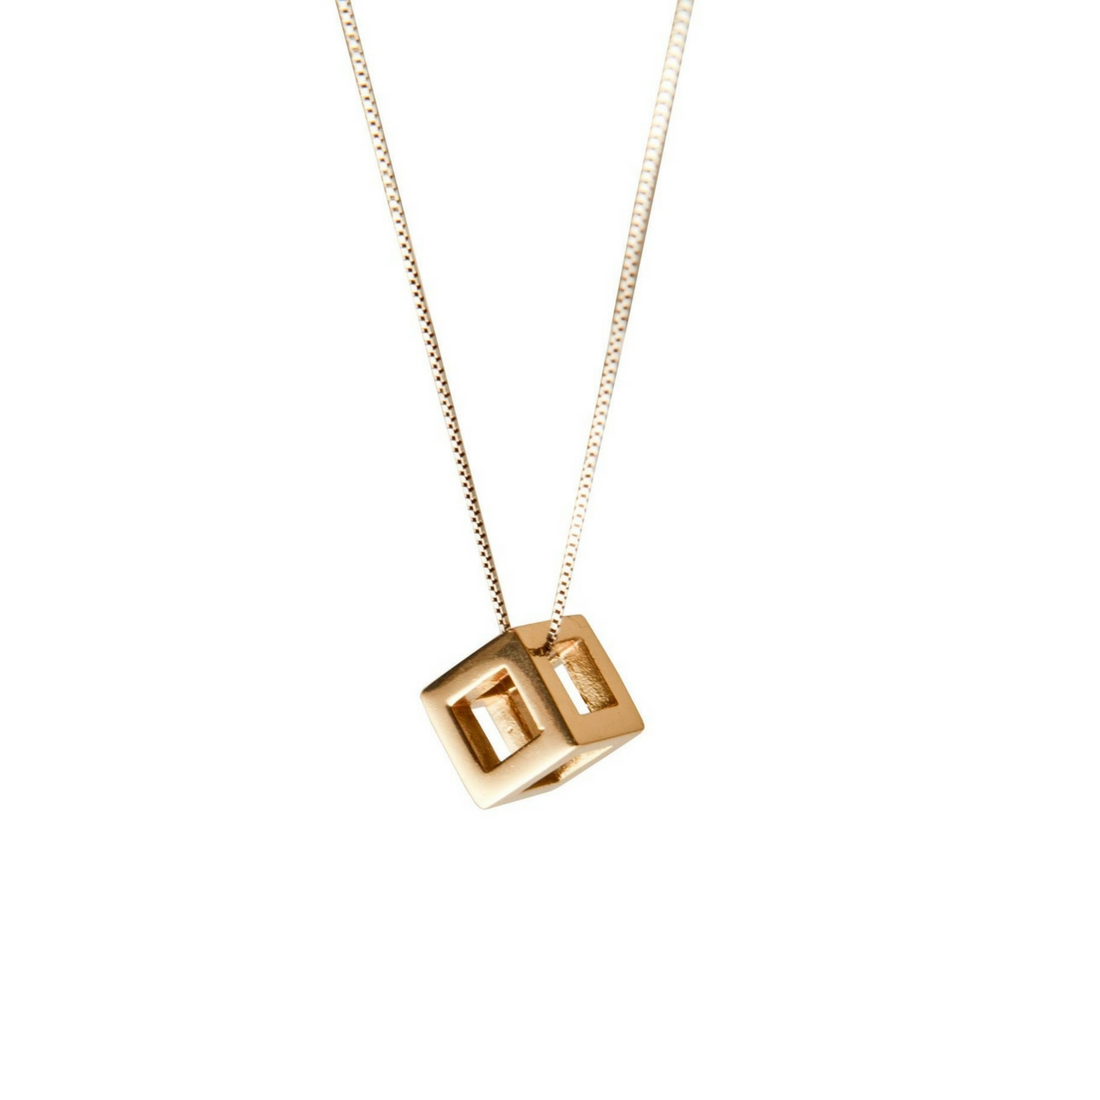 Q.Bo. Pendant Gold Plated Bronze 2 | Co.Ro. Jewels